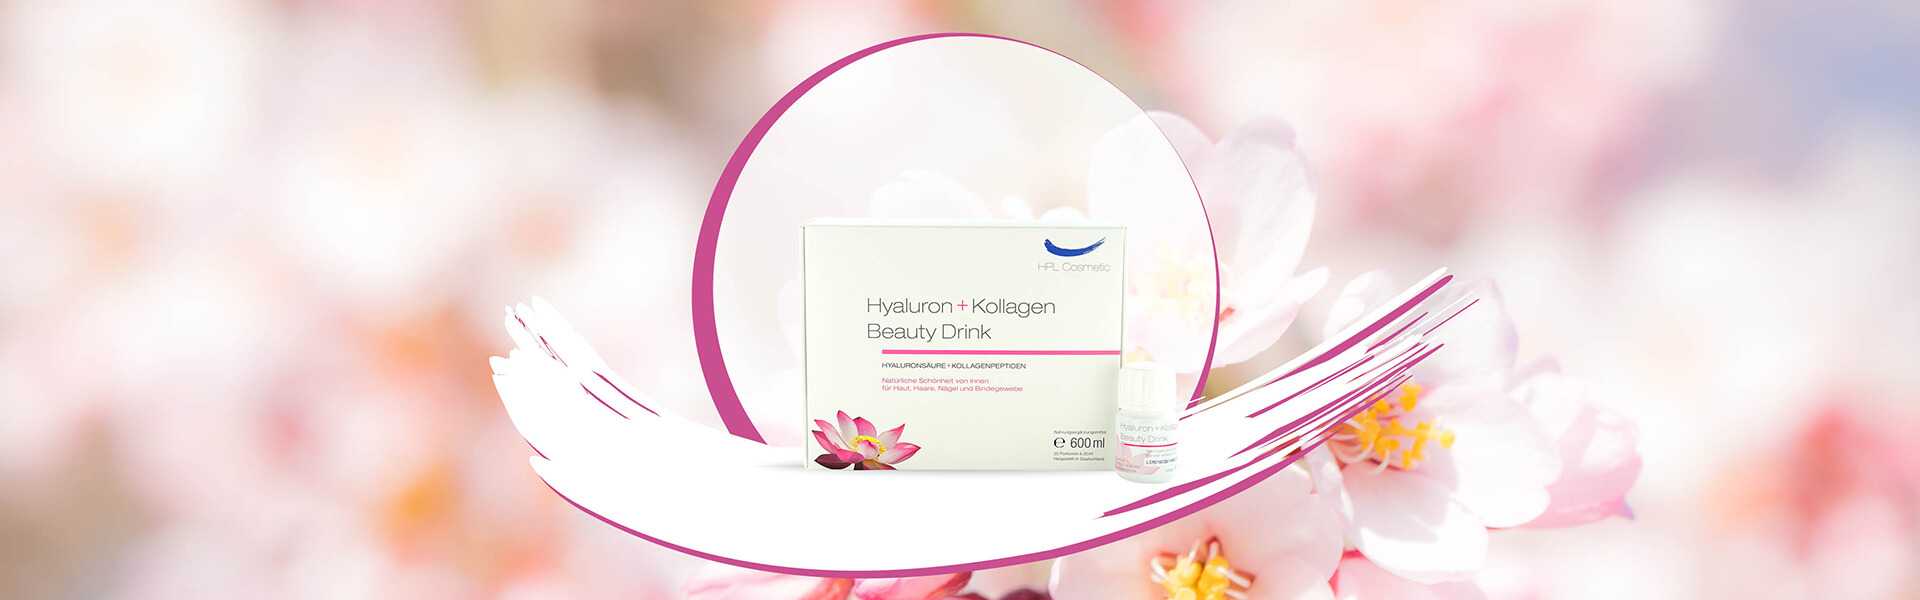 HPL Hyaluron + Collangen Beauty-Drink